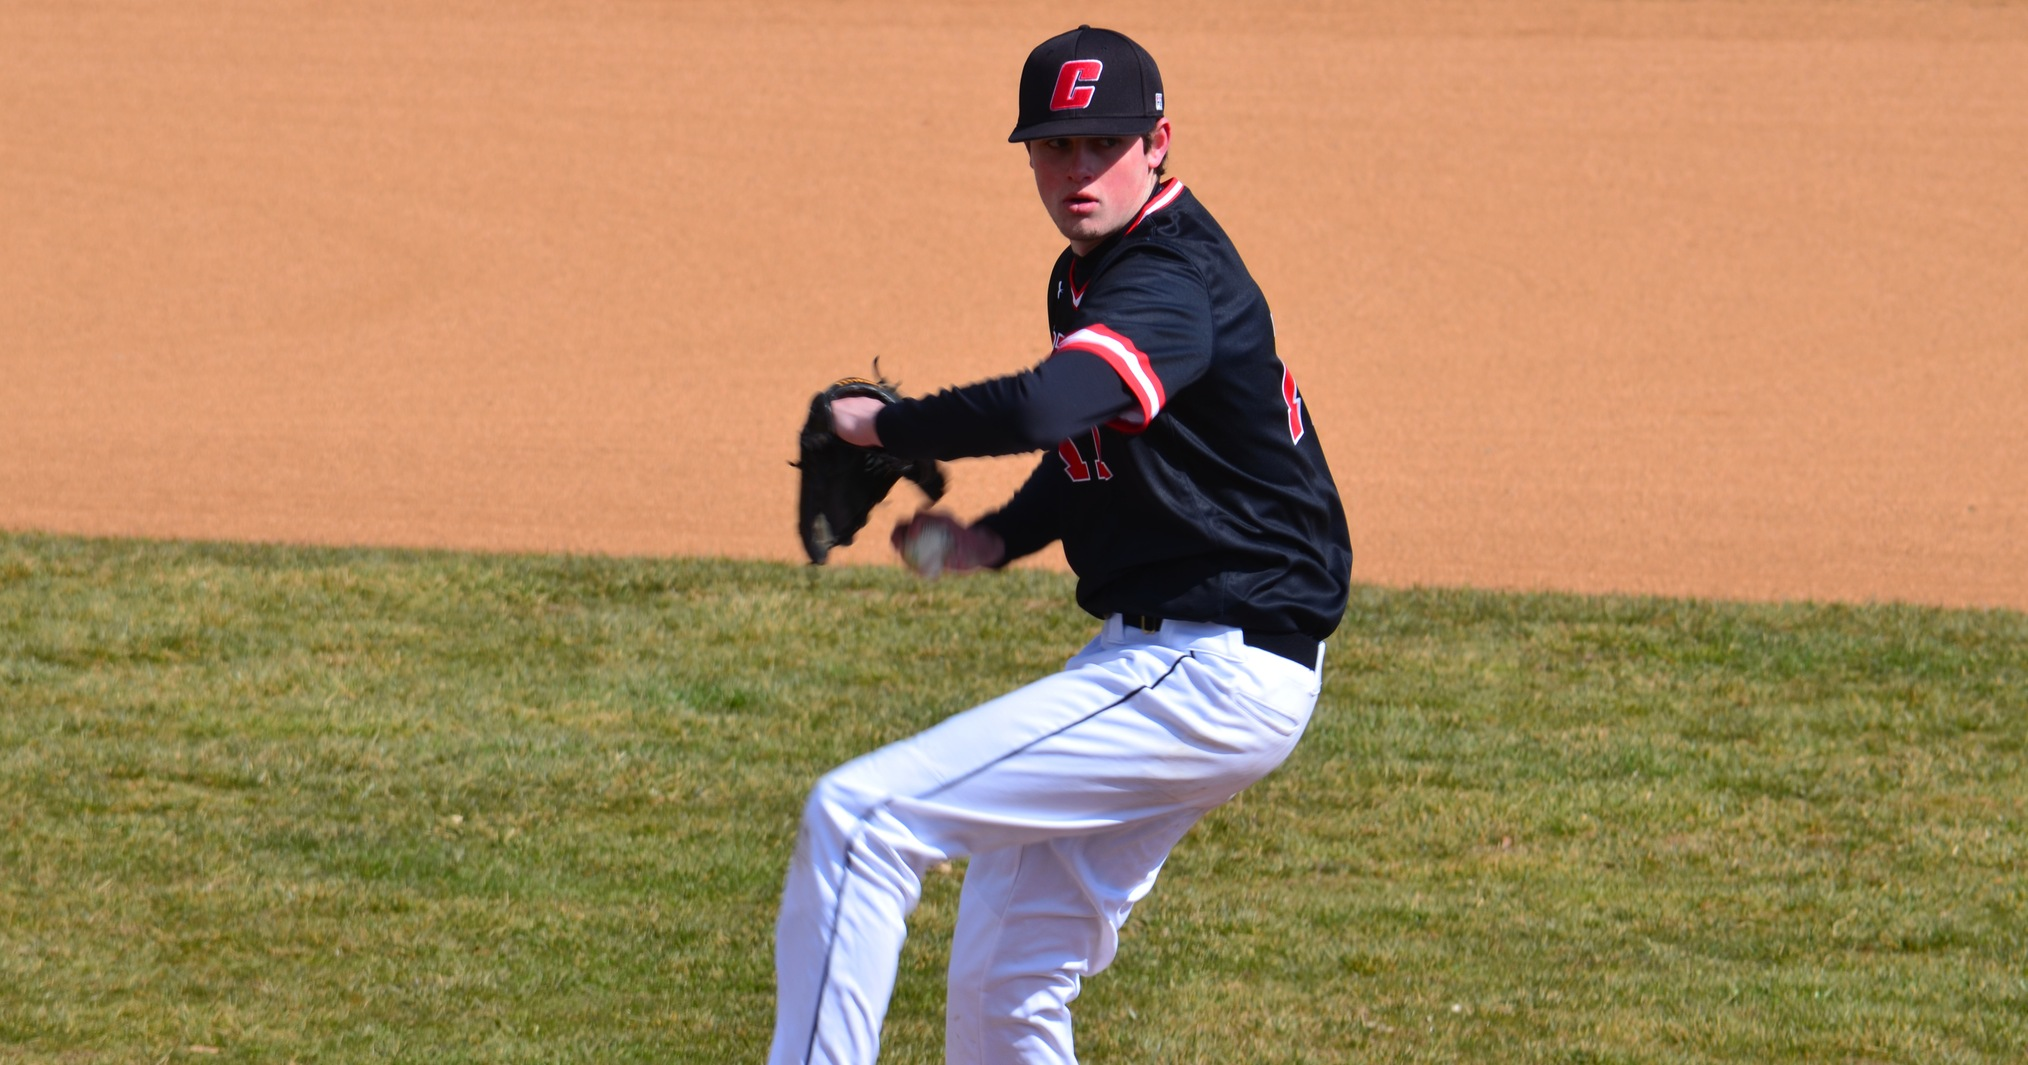 Alch Earns Third Win in 8-3 Win Over New England College